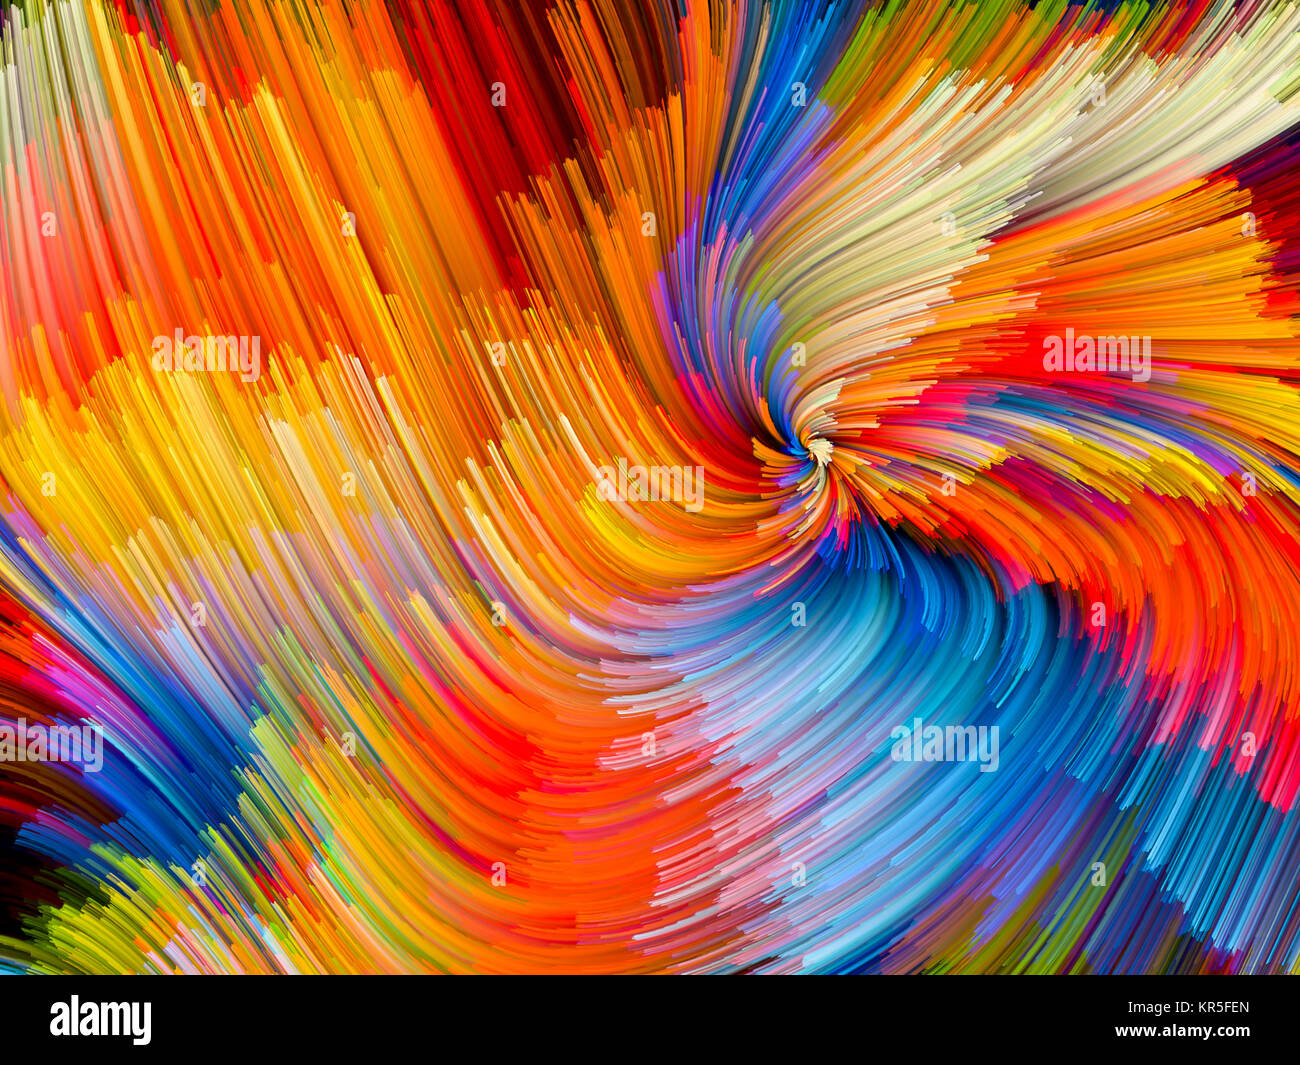 Color Vortex Backdrop - Stock Image